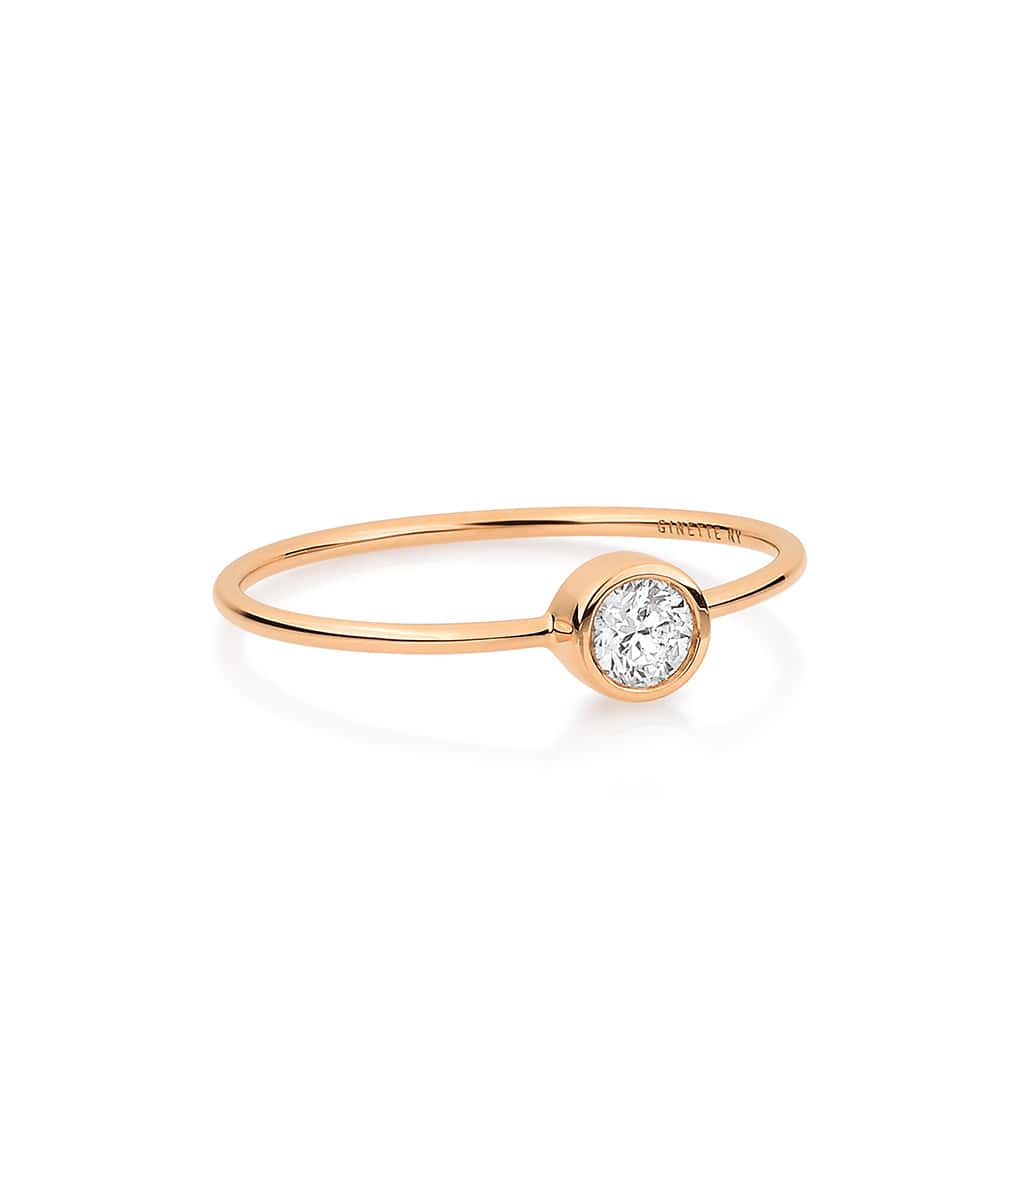 GINETTE_NY - Bague Lonely Diamonds Large Diamants Or Rose